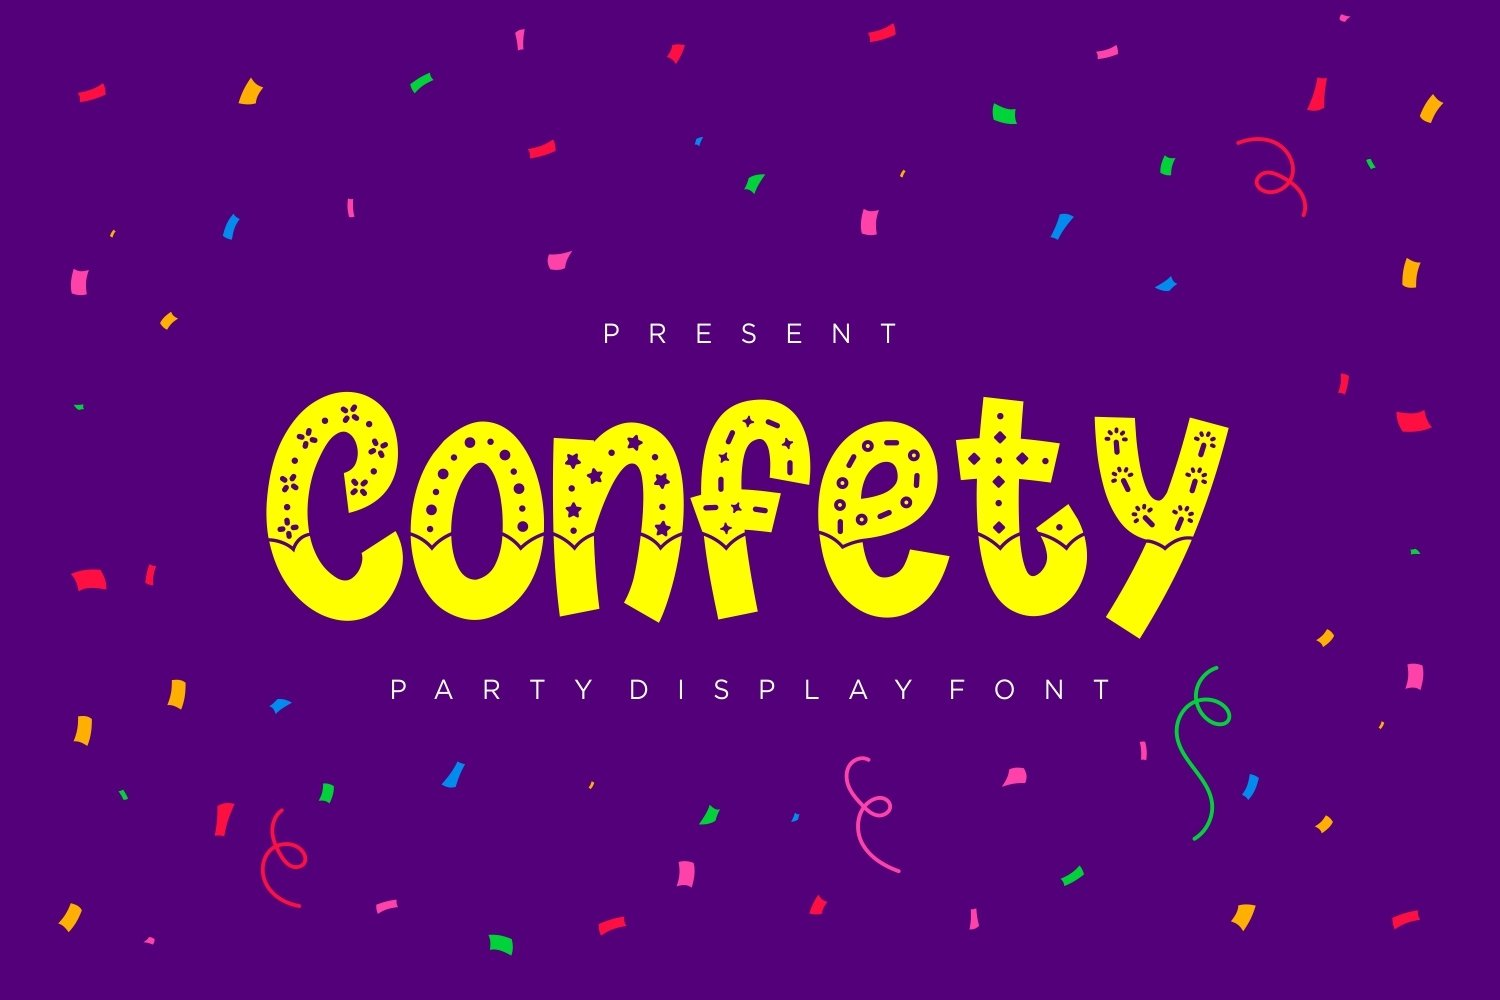 Confety - Party Display Font example image 1